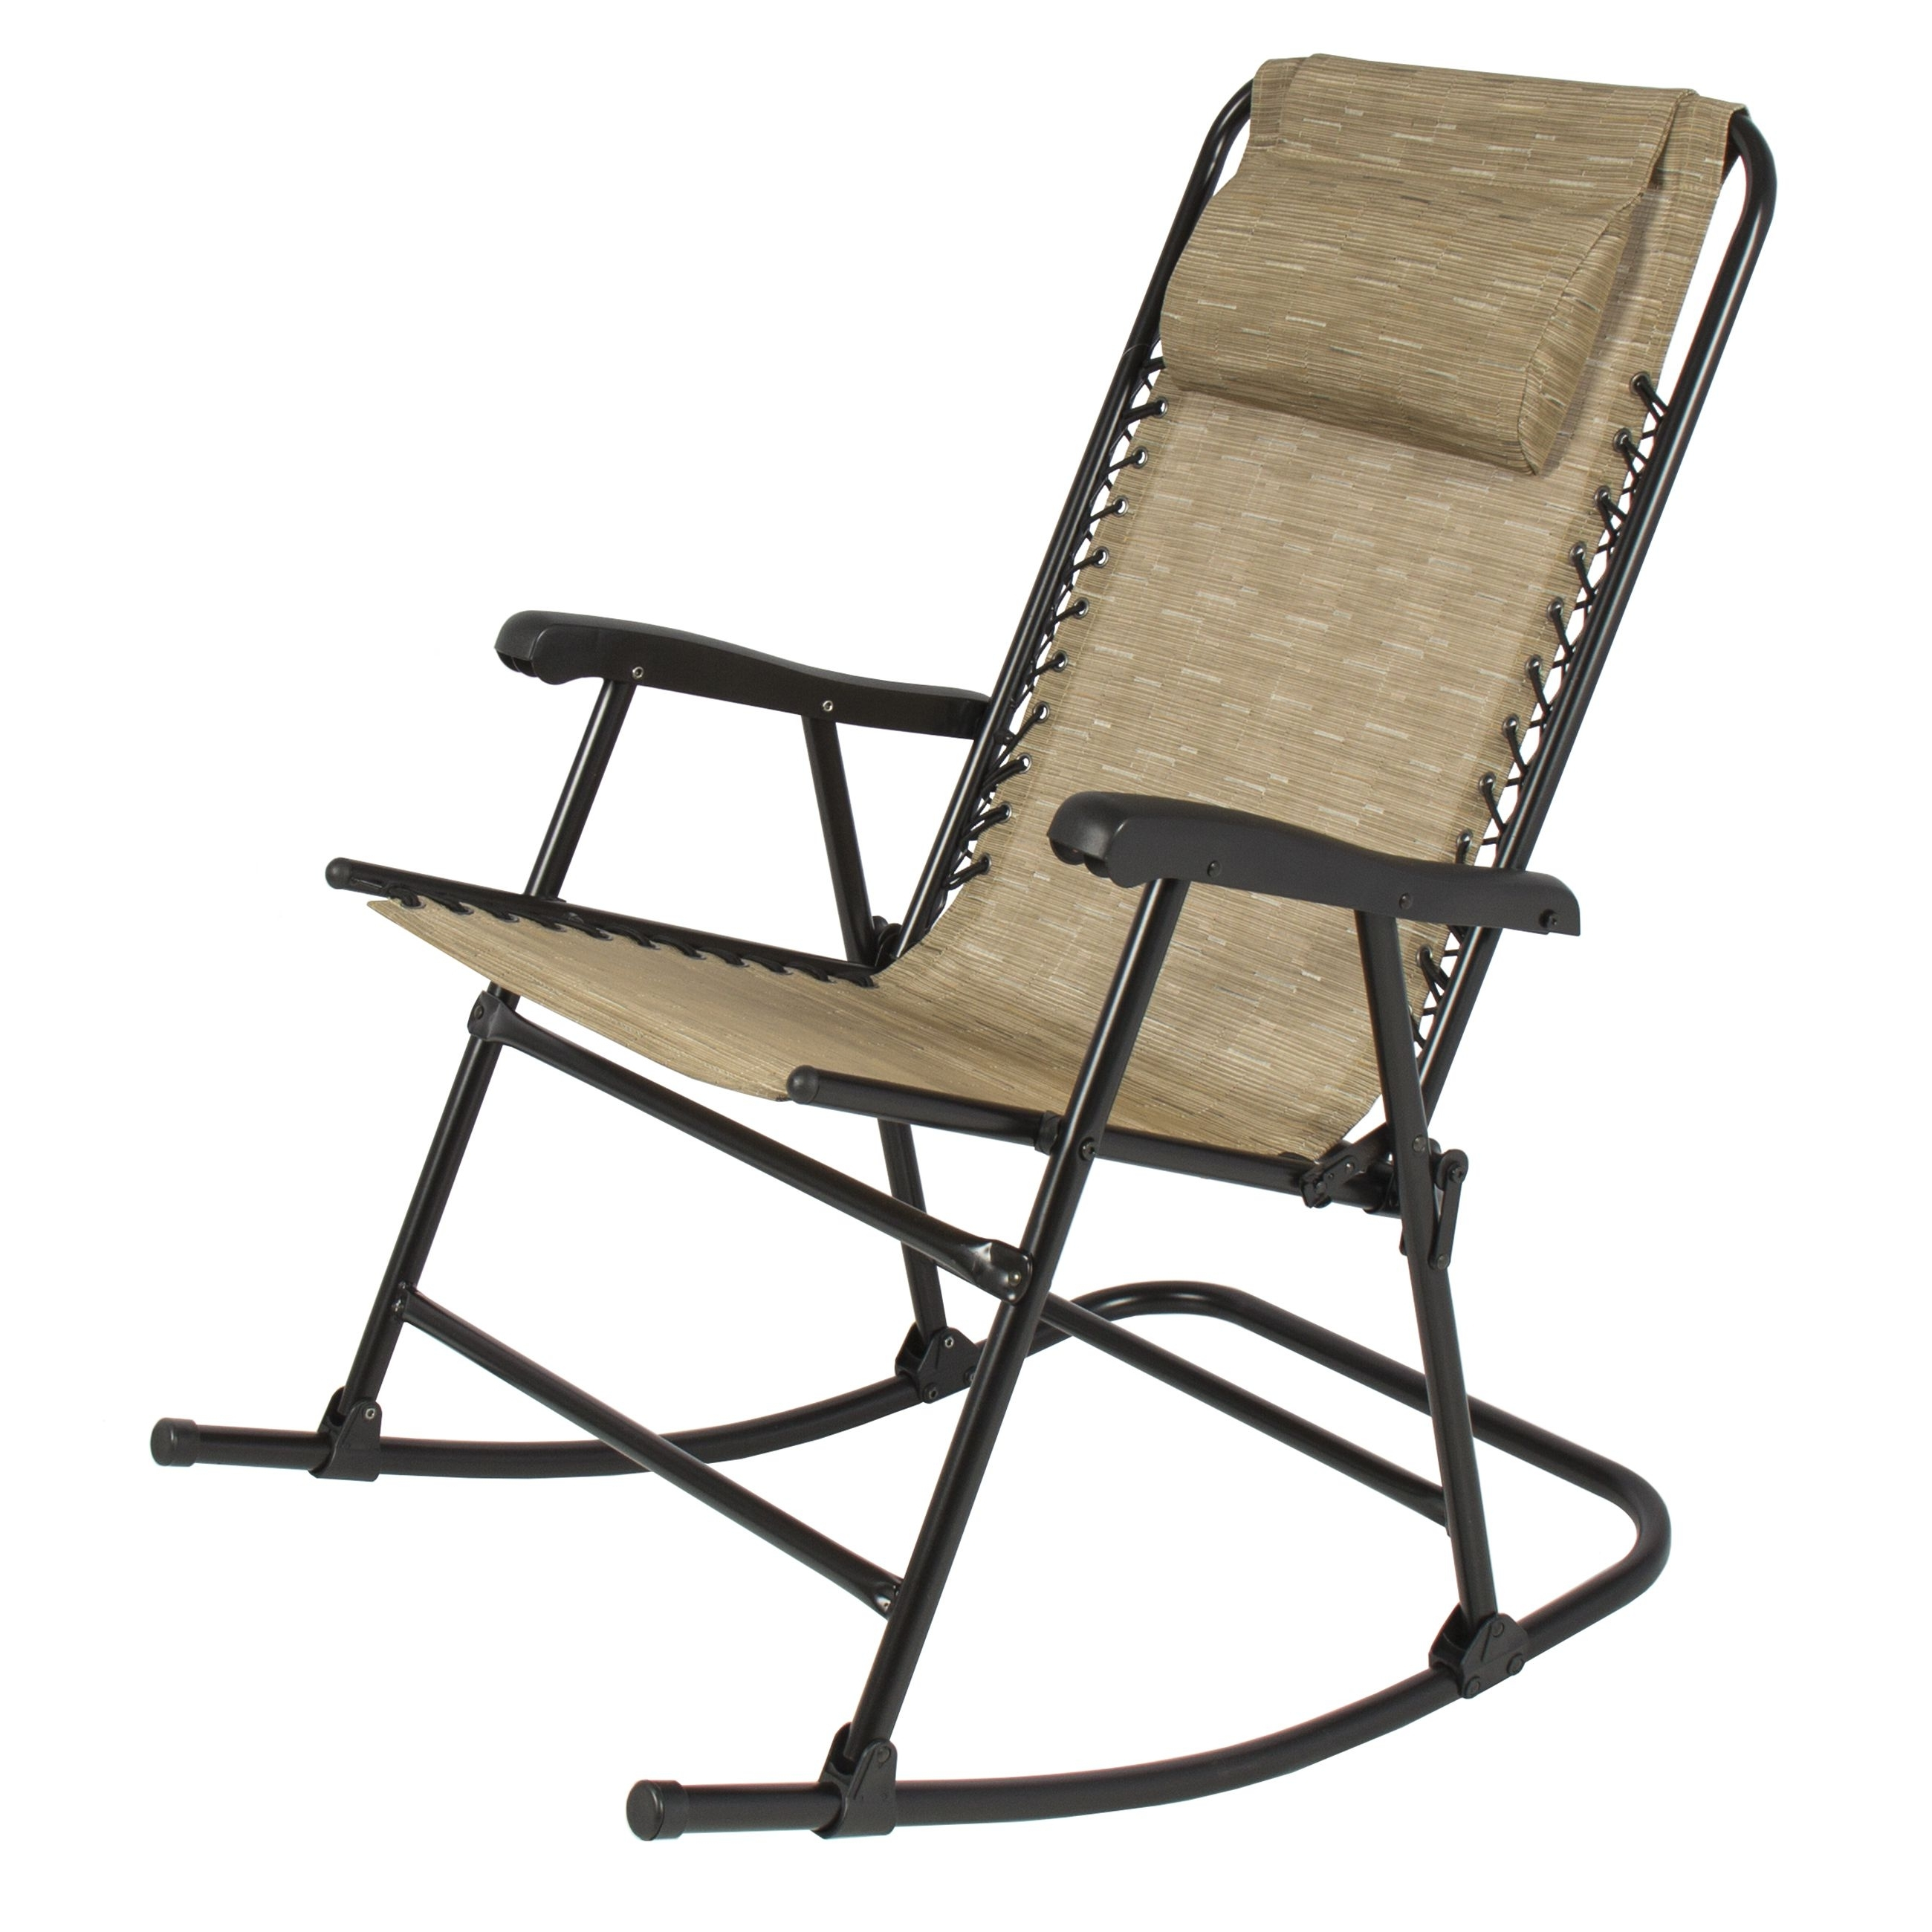 Rocking Chairs For Patio Pertaining To Most Popular Folding Rocking Chair Foldable Rocker Outdoor Patio Furniture Beige (View 16 of 20)